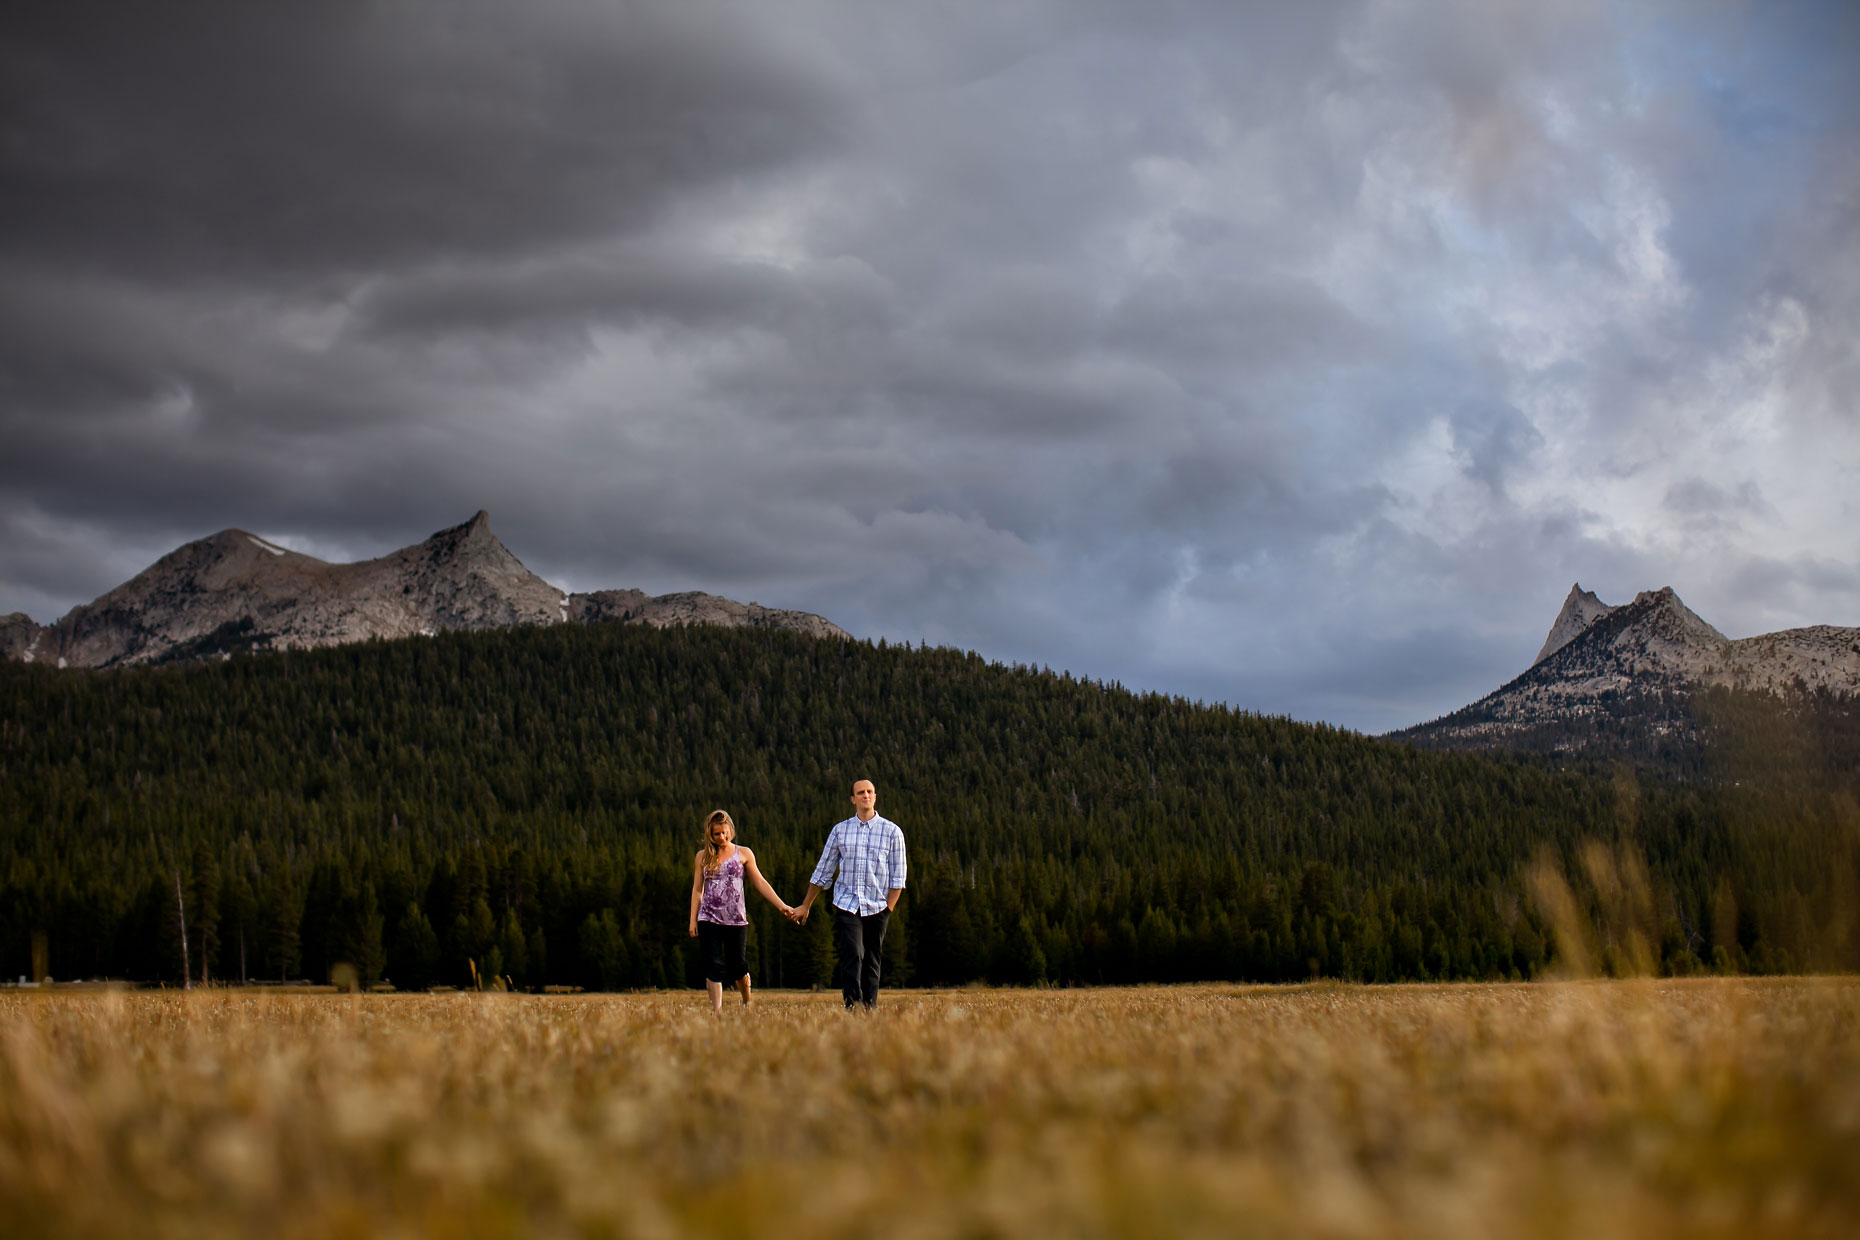 Tuolumne Meadows adventure session photography in Yosemite.